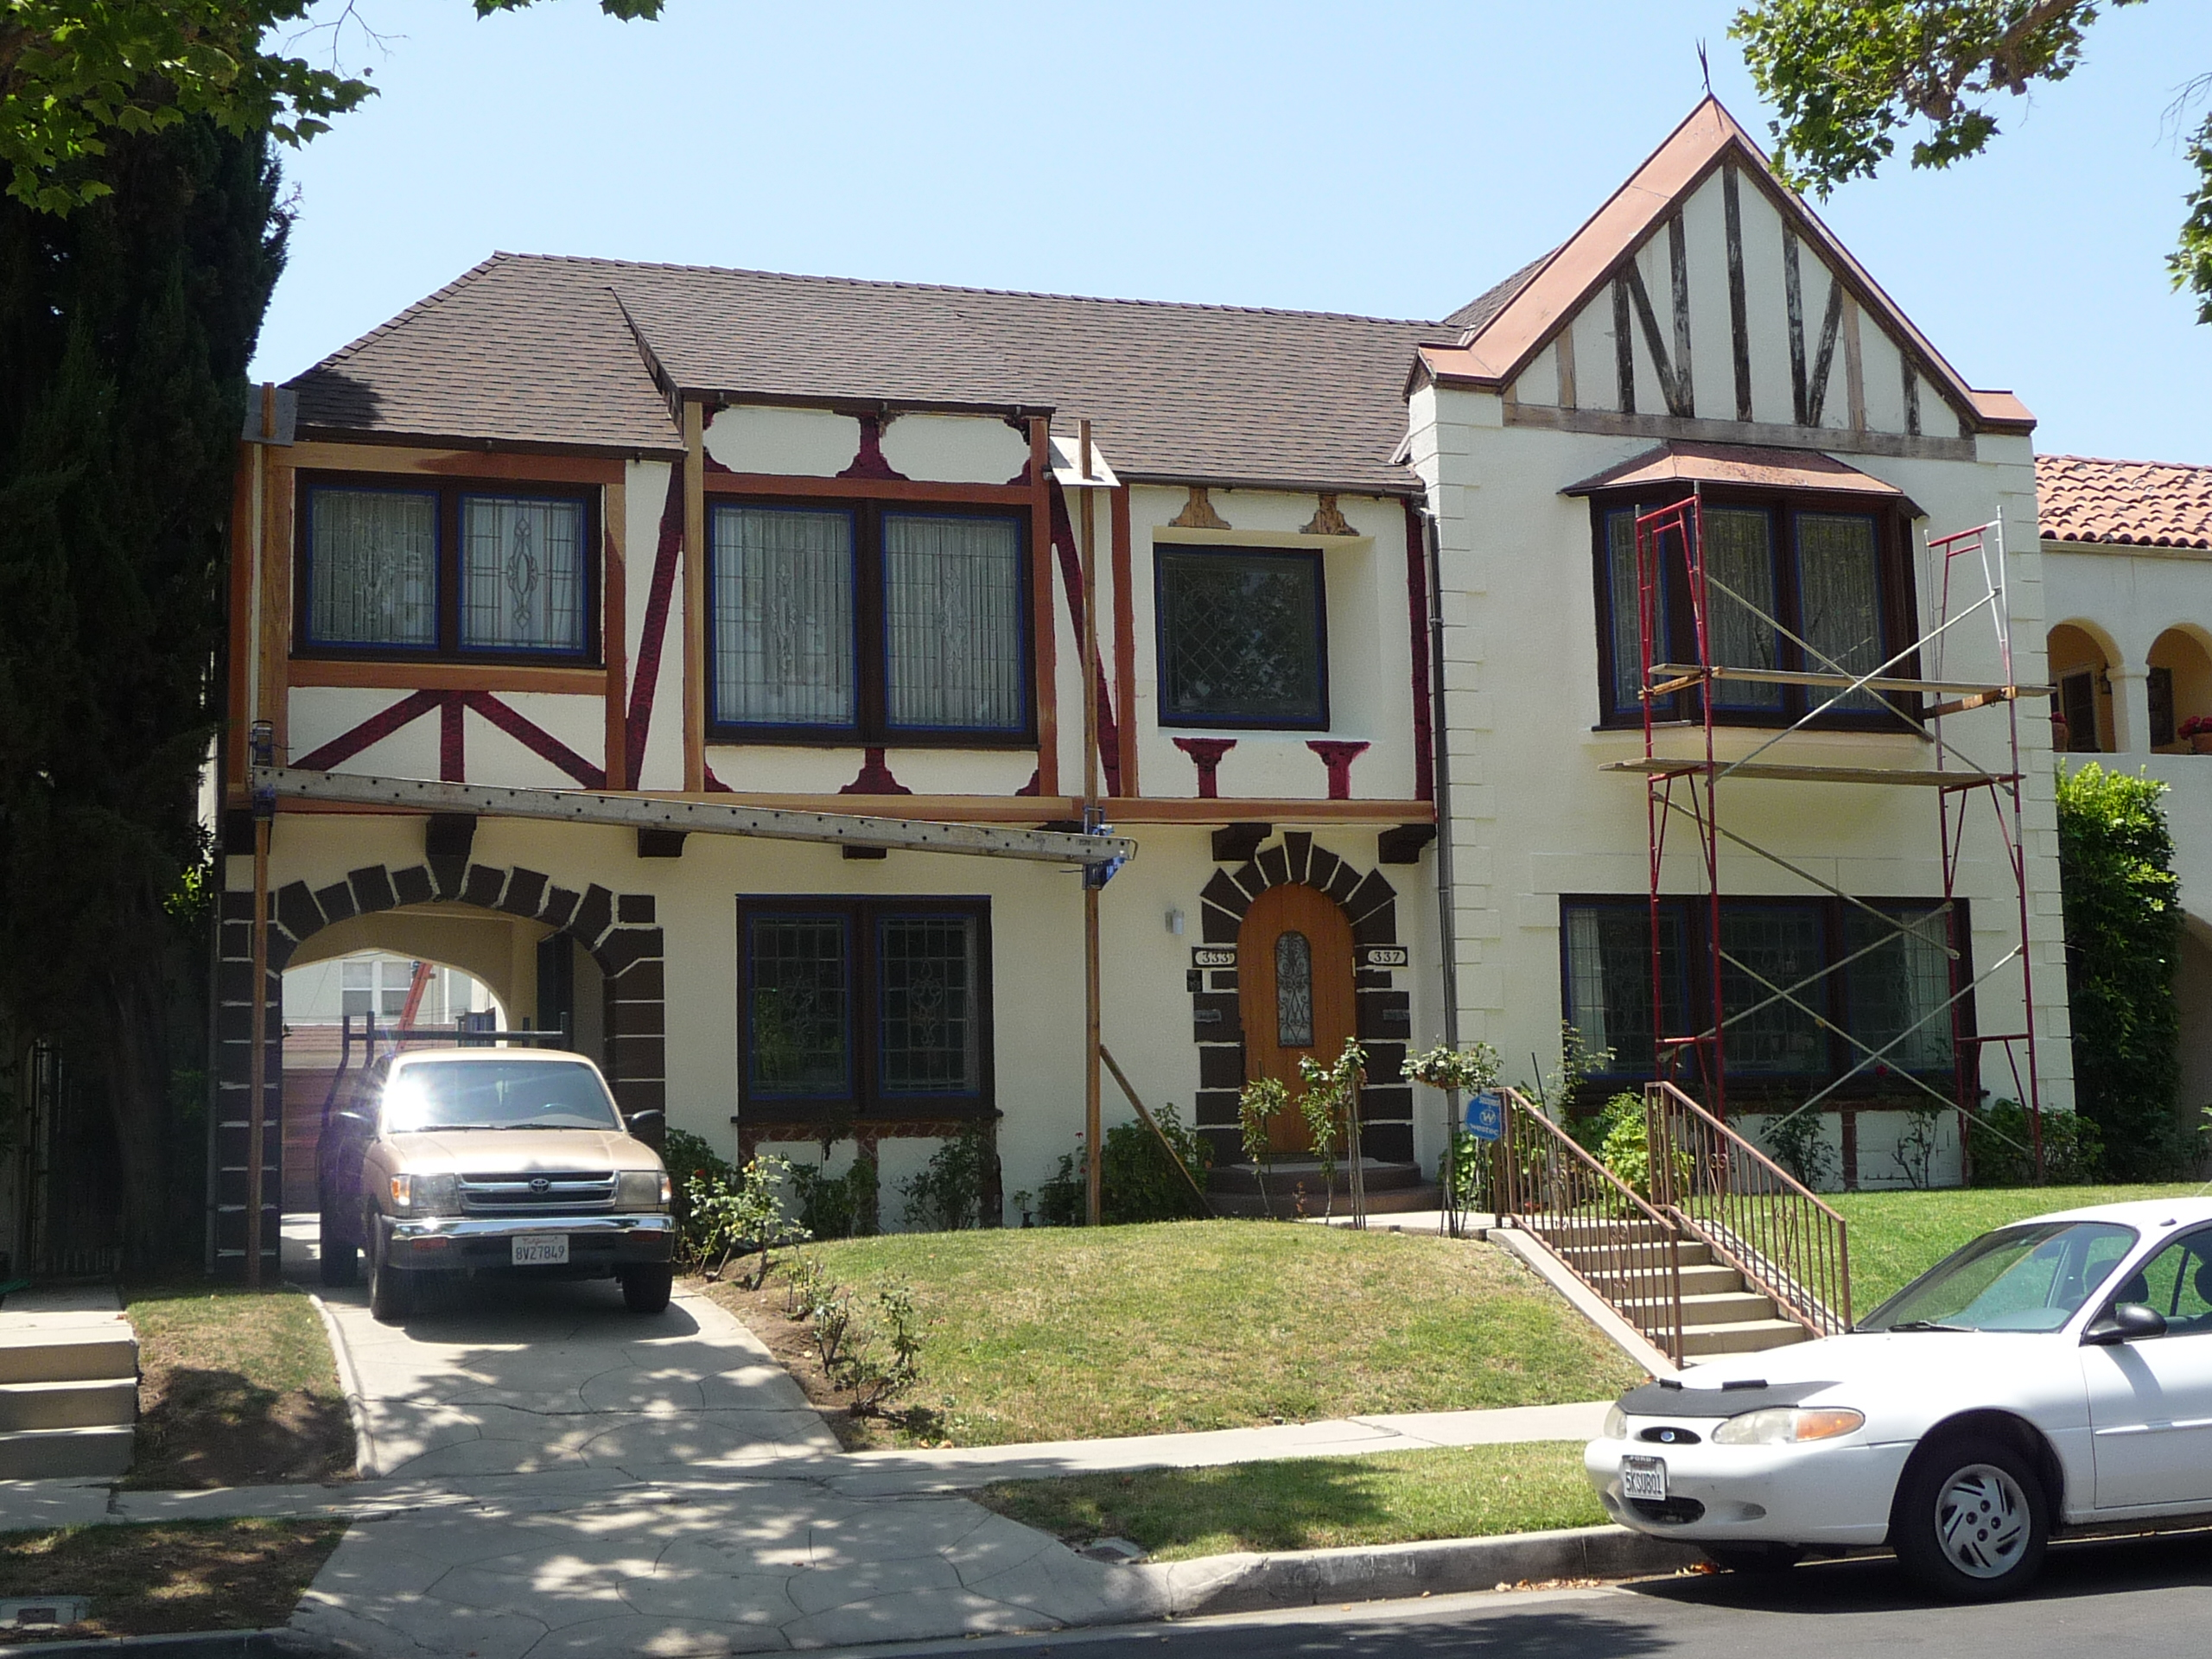 337 N MANSFIELD AVE - PHOTO